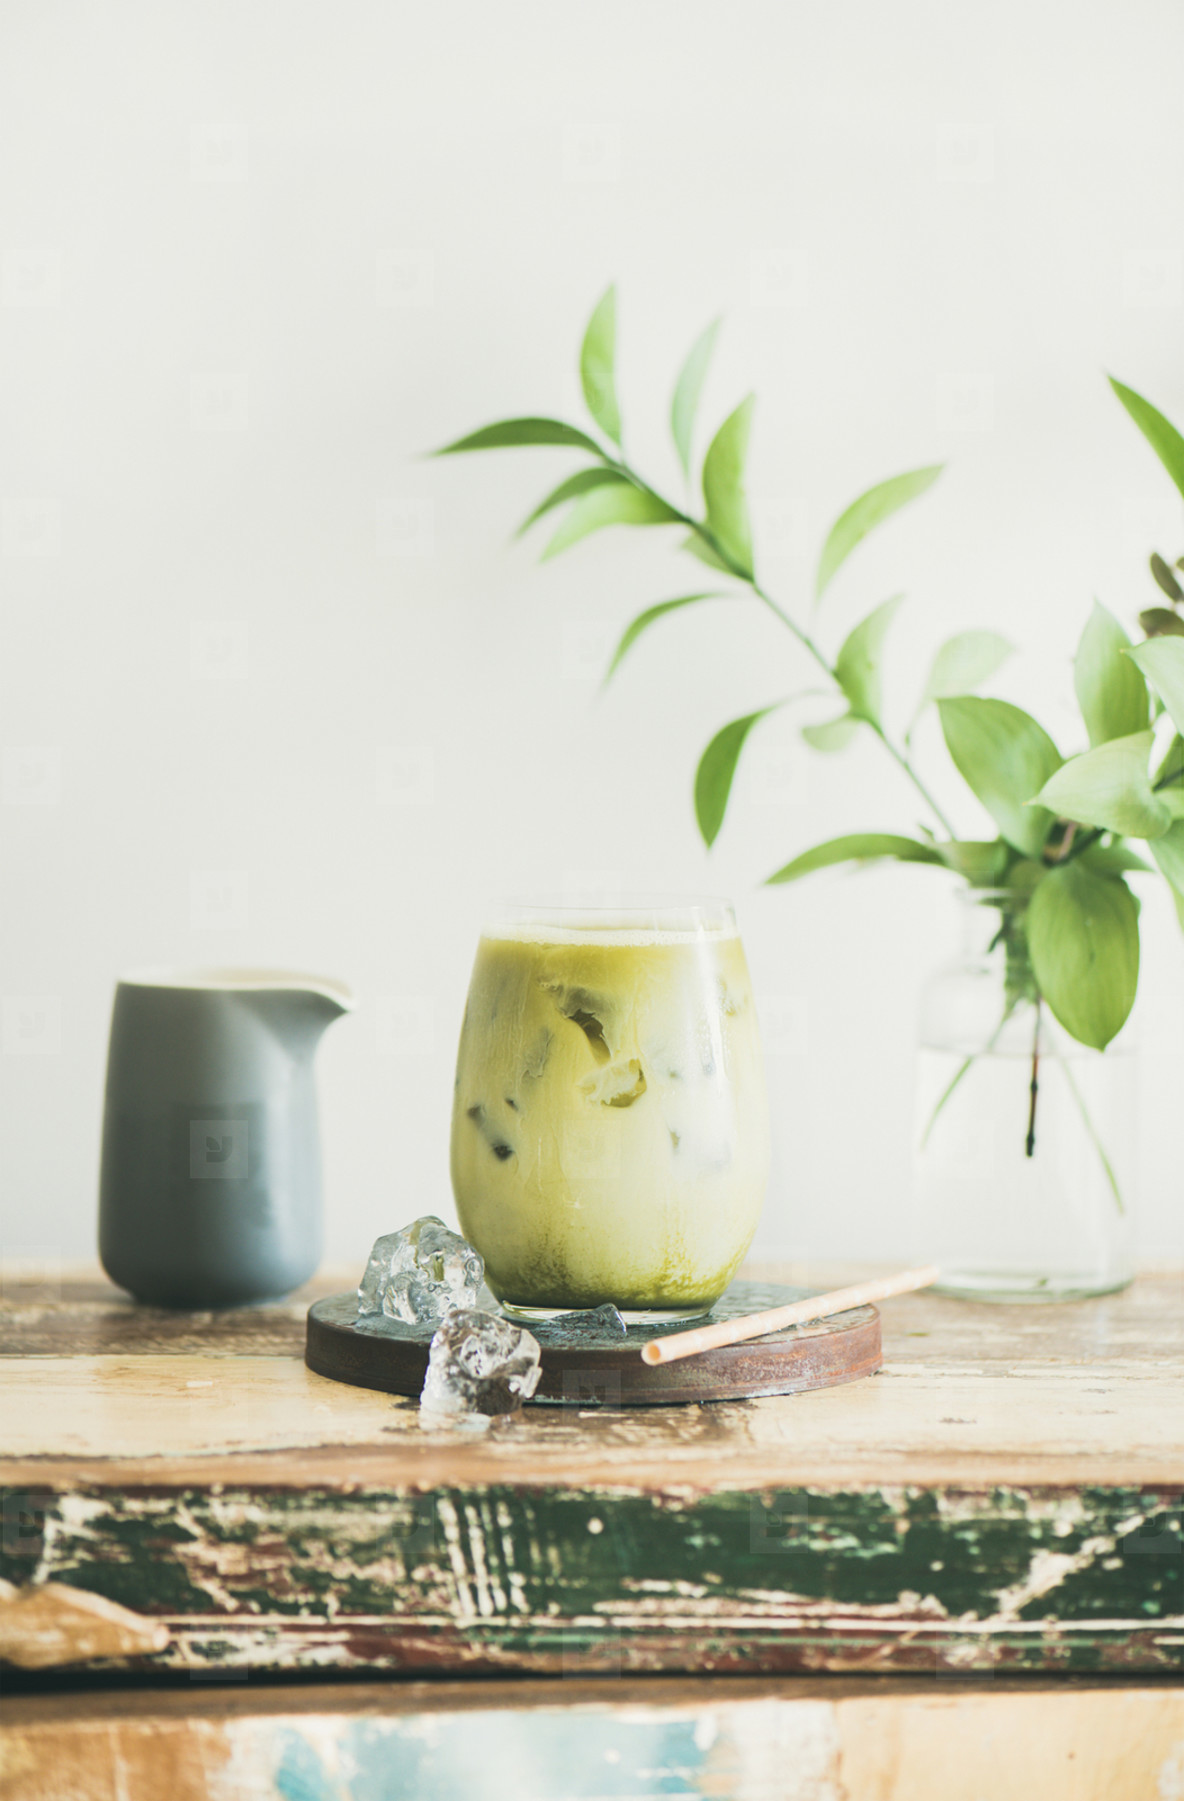 Iced matcha latte drink in glass  white wall at background